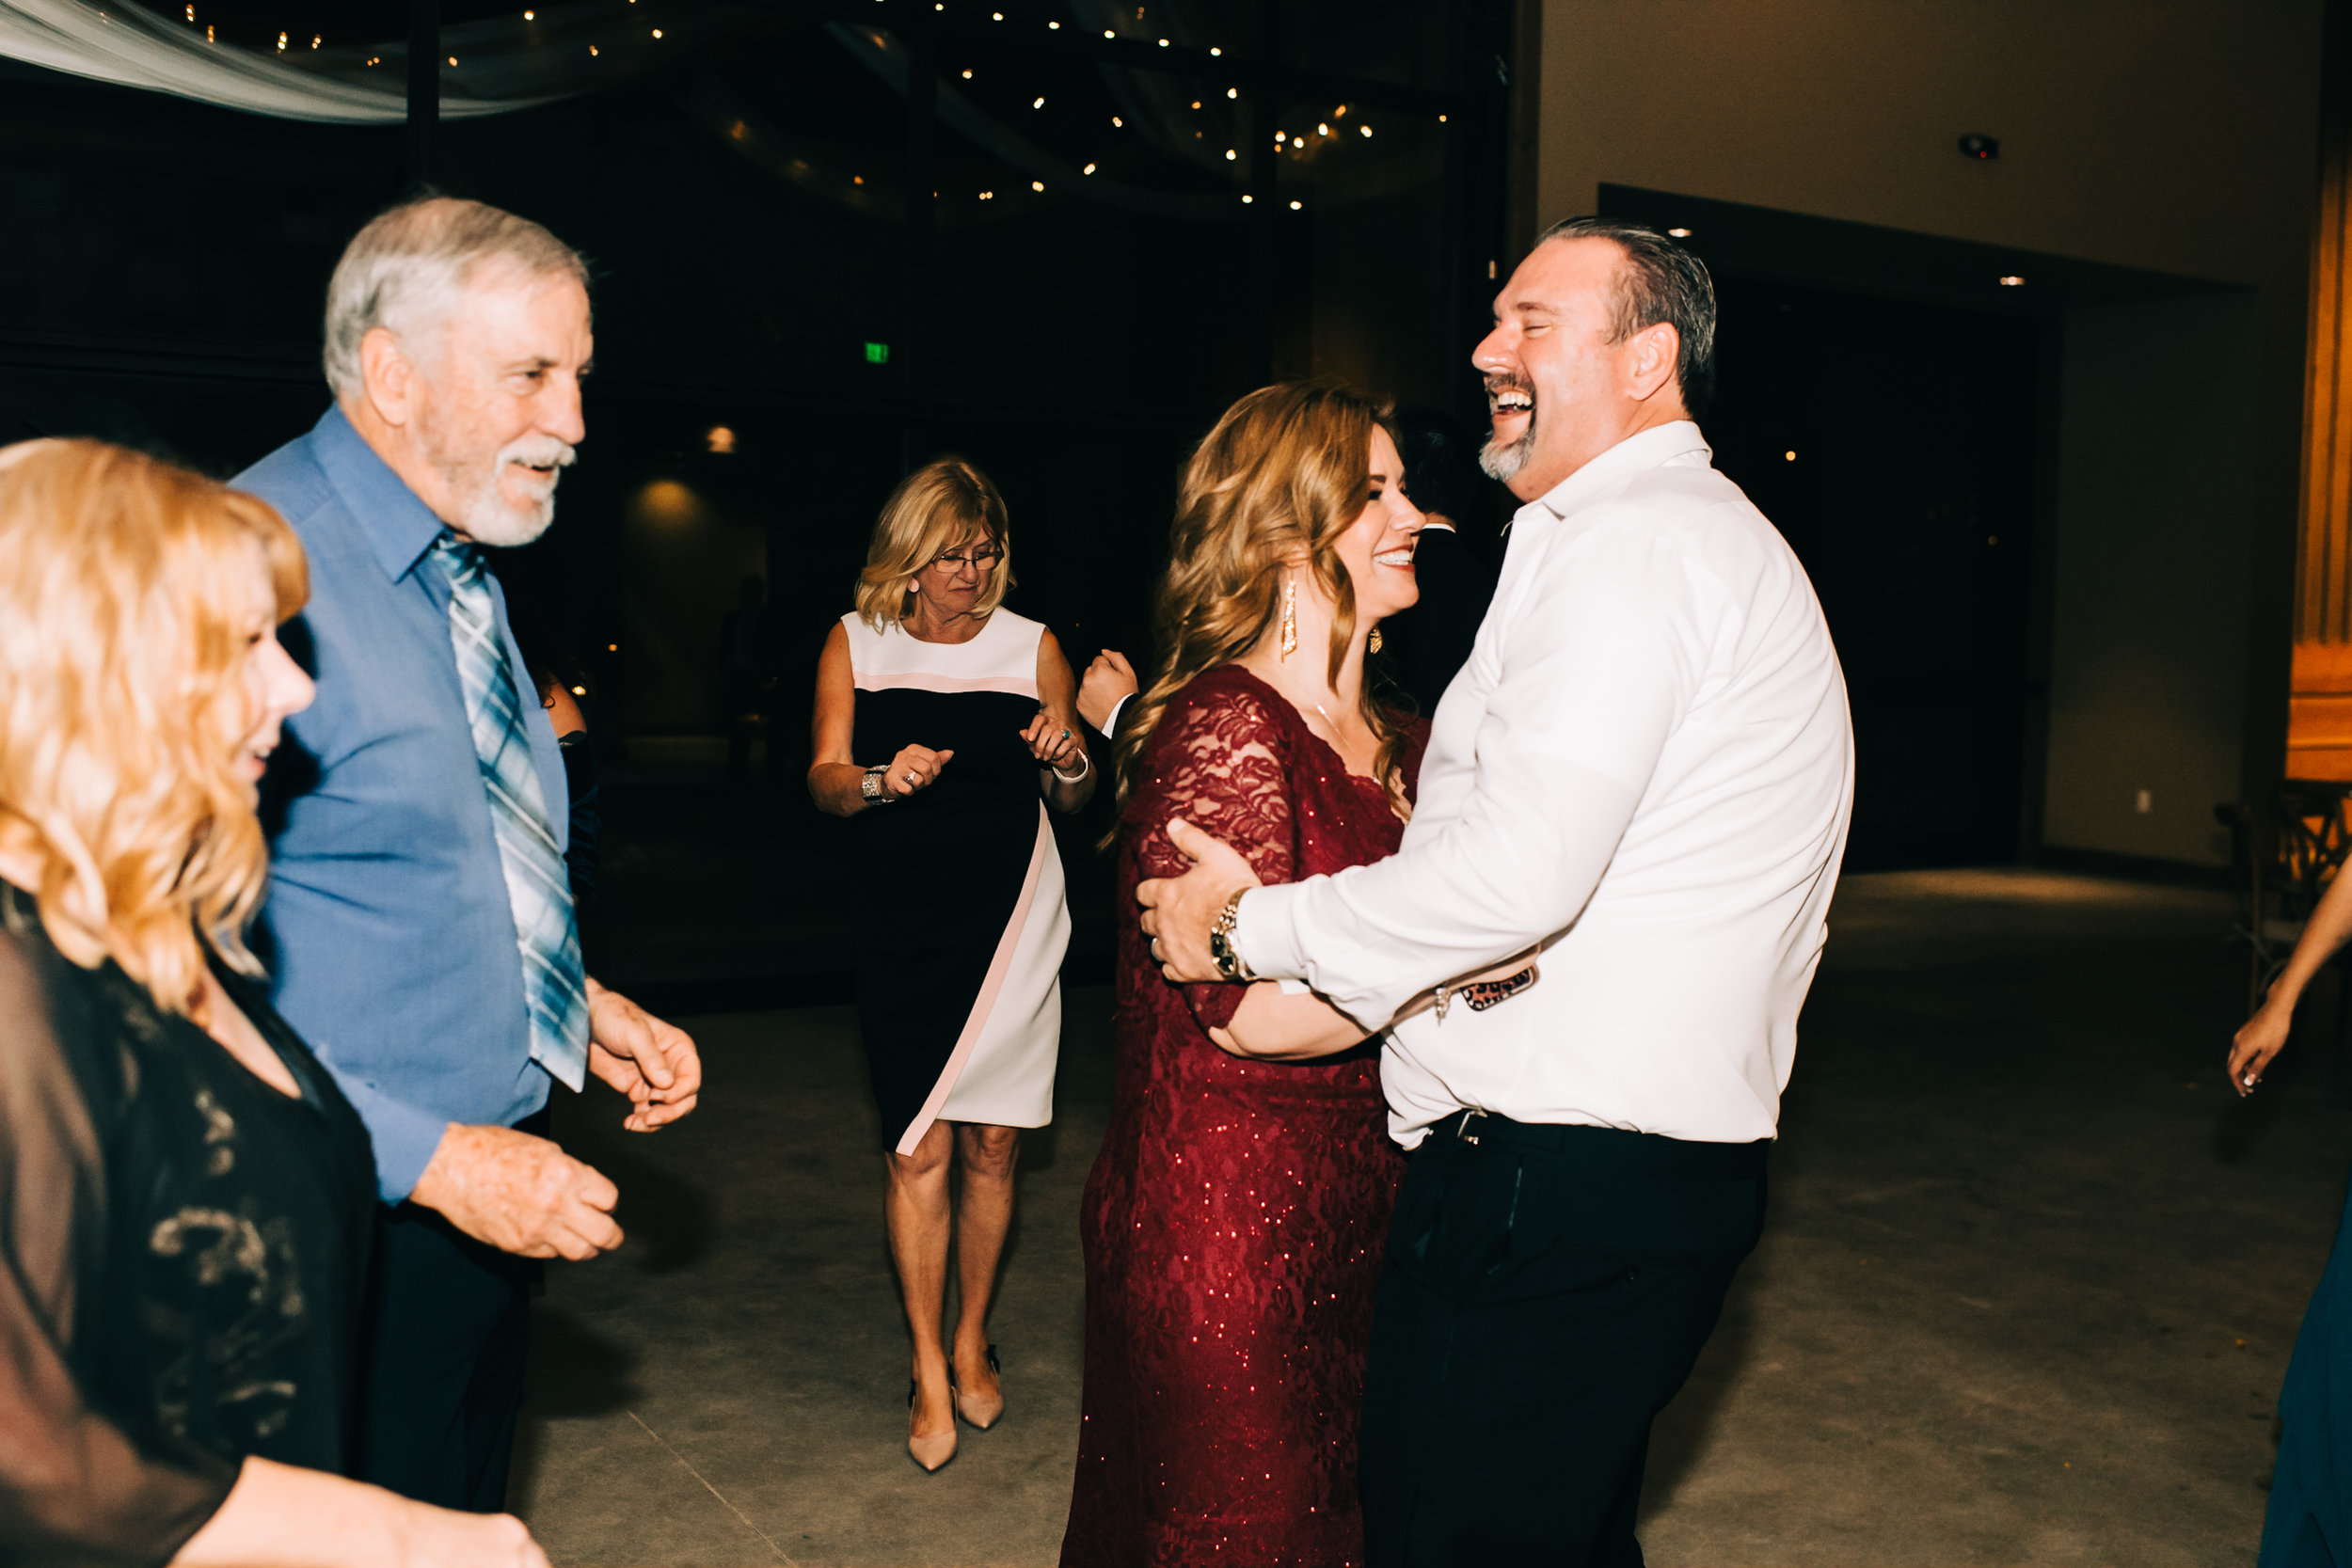 bay area nontraditional wedding photographer southern california boho wedding love light magic san francisco oakland northern california-1327.jpg